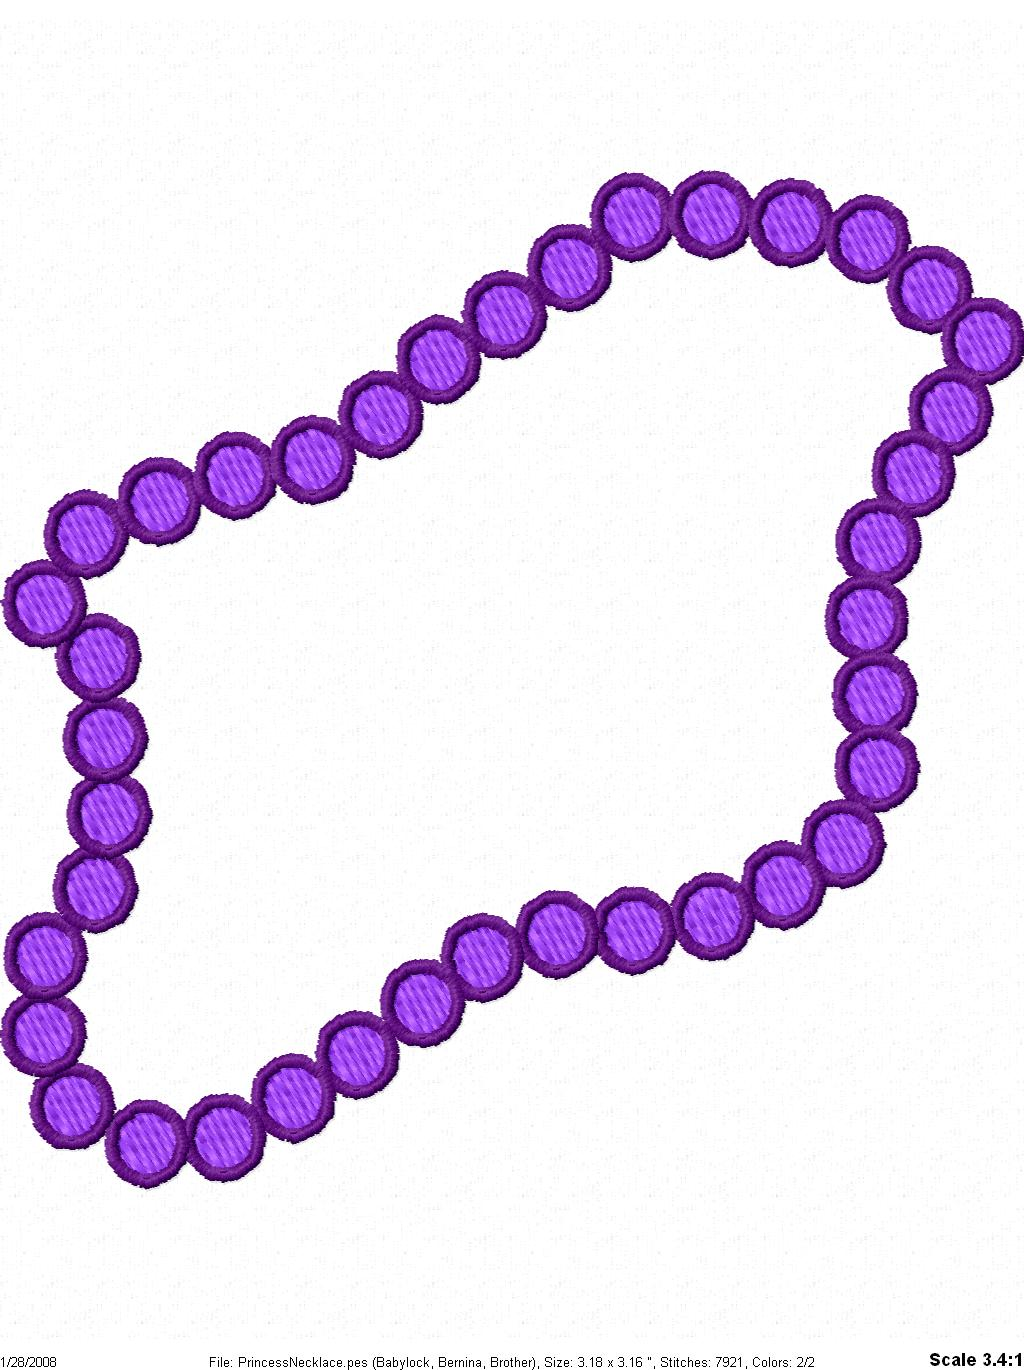 Necklace beads clipart.